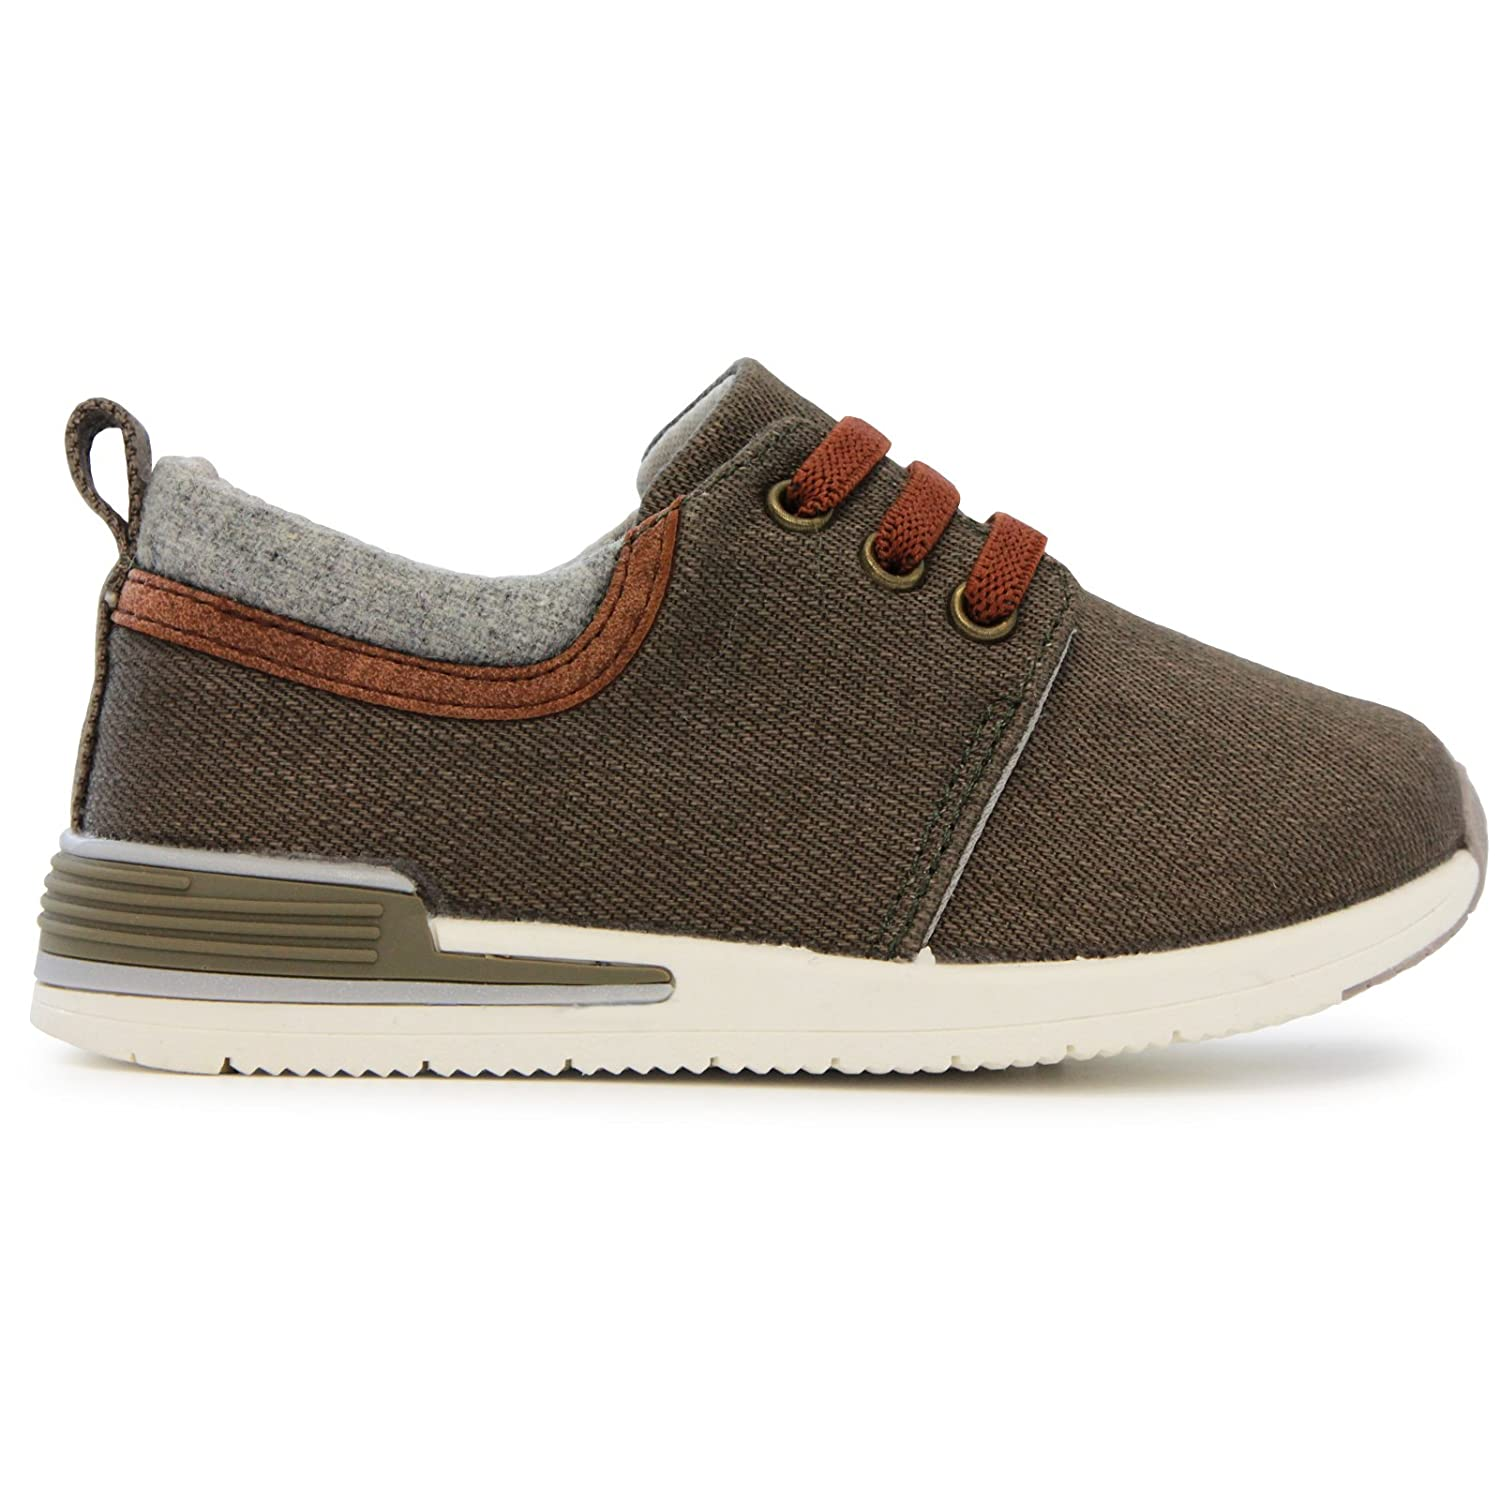 Oomphies Sunny Boys Forest Athletic Shoe